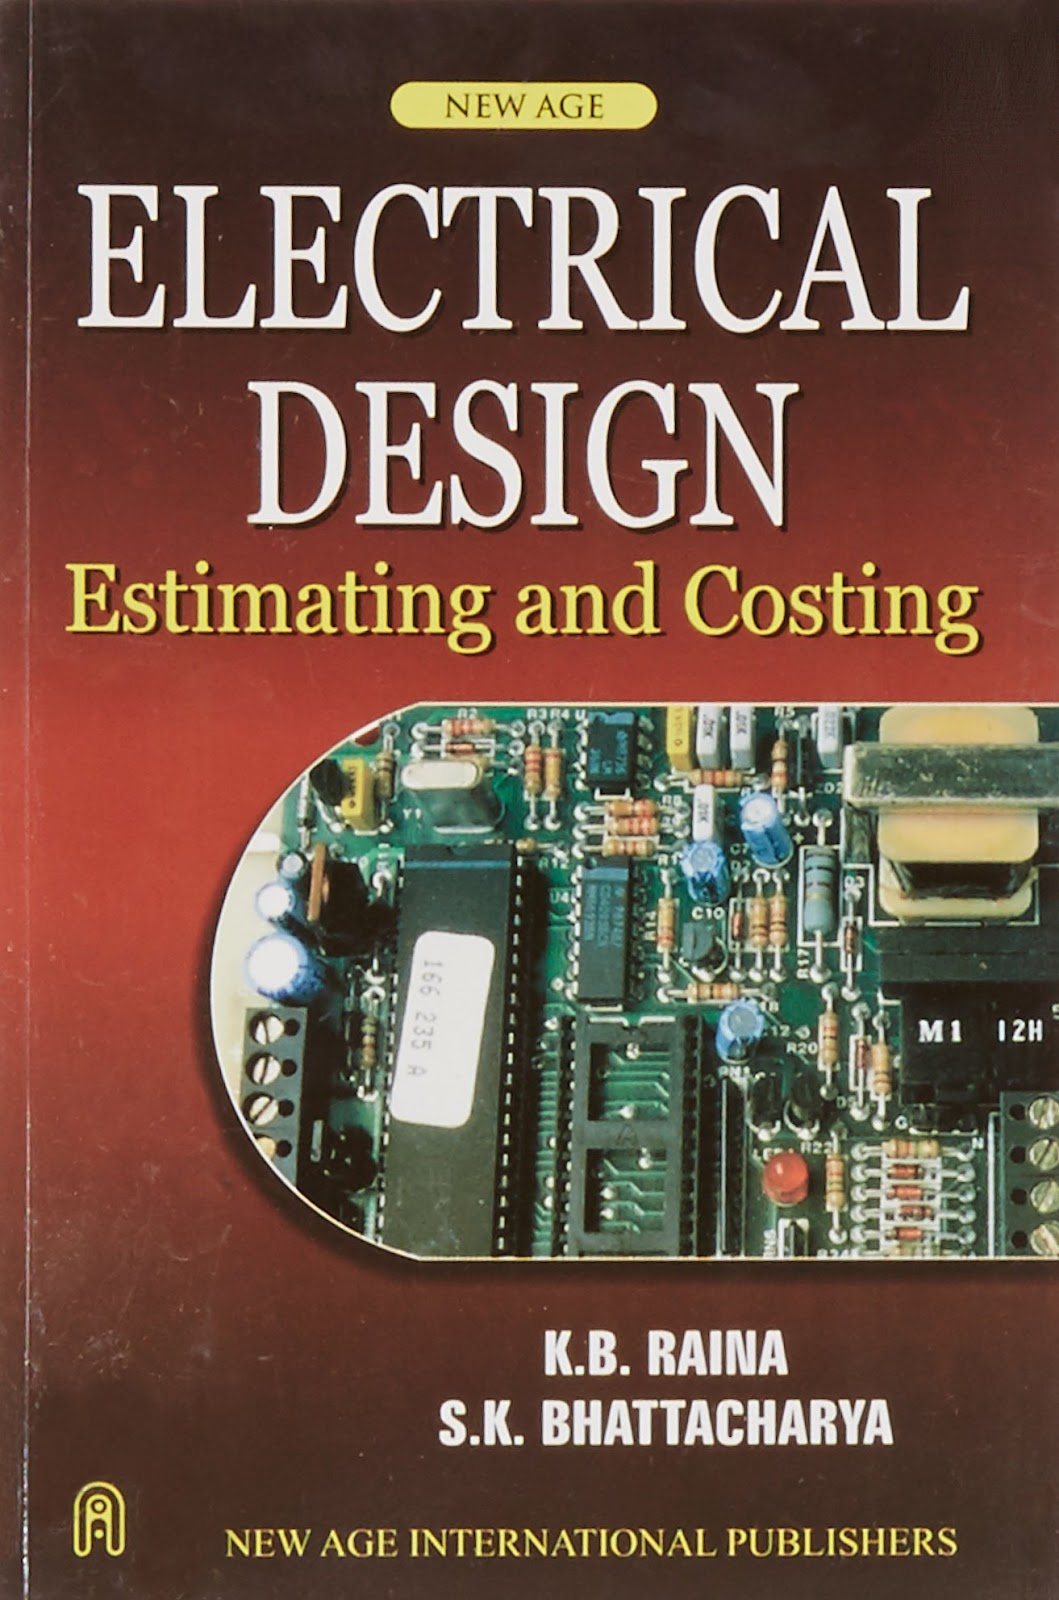 electrical design estimating and costing pdf  [ 1059 x 1600 Pixel ]